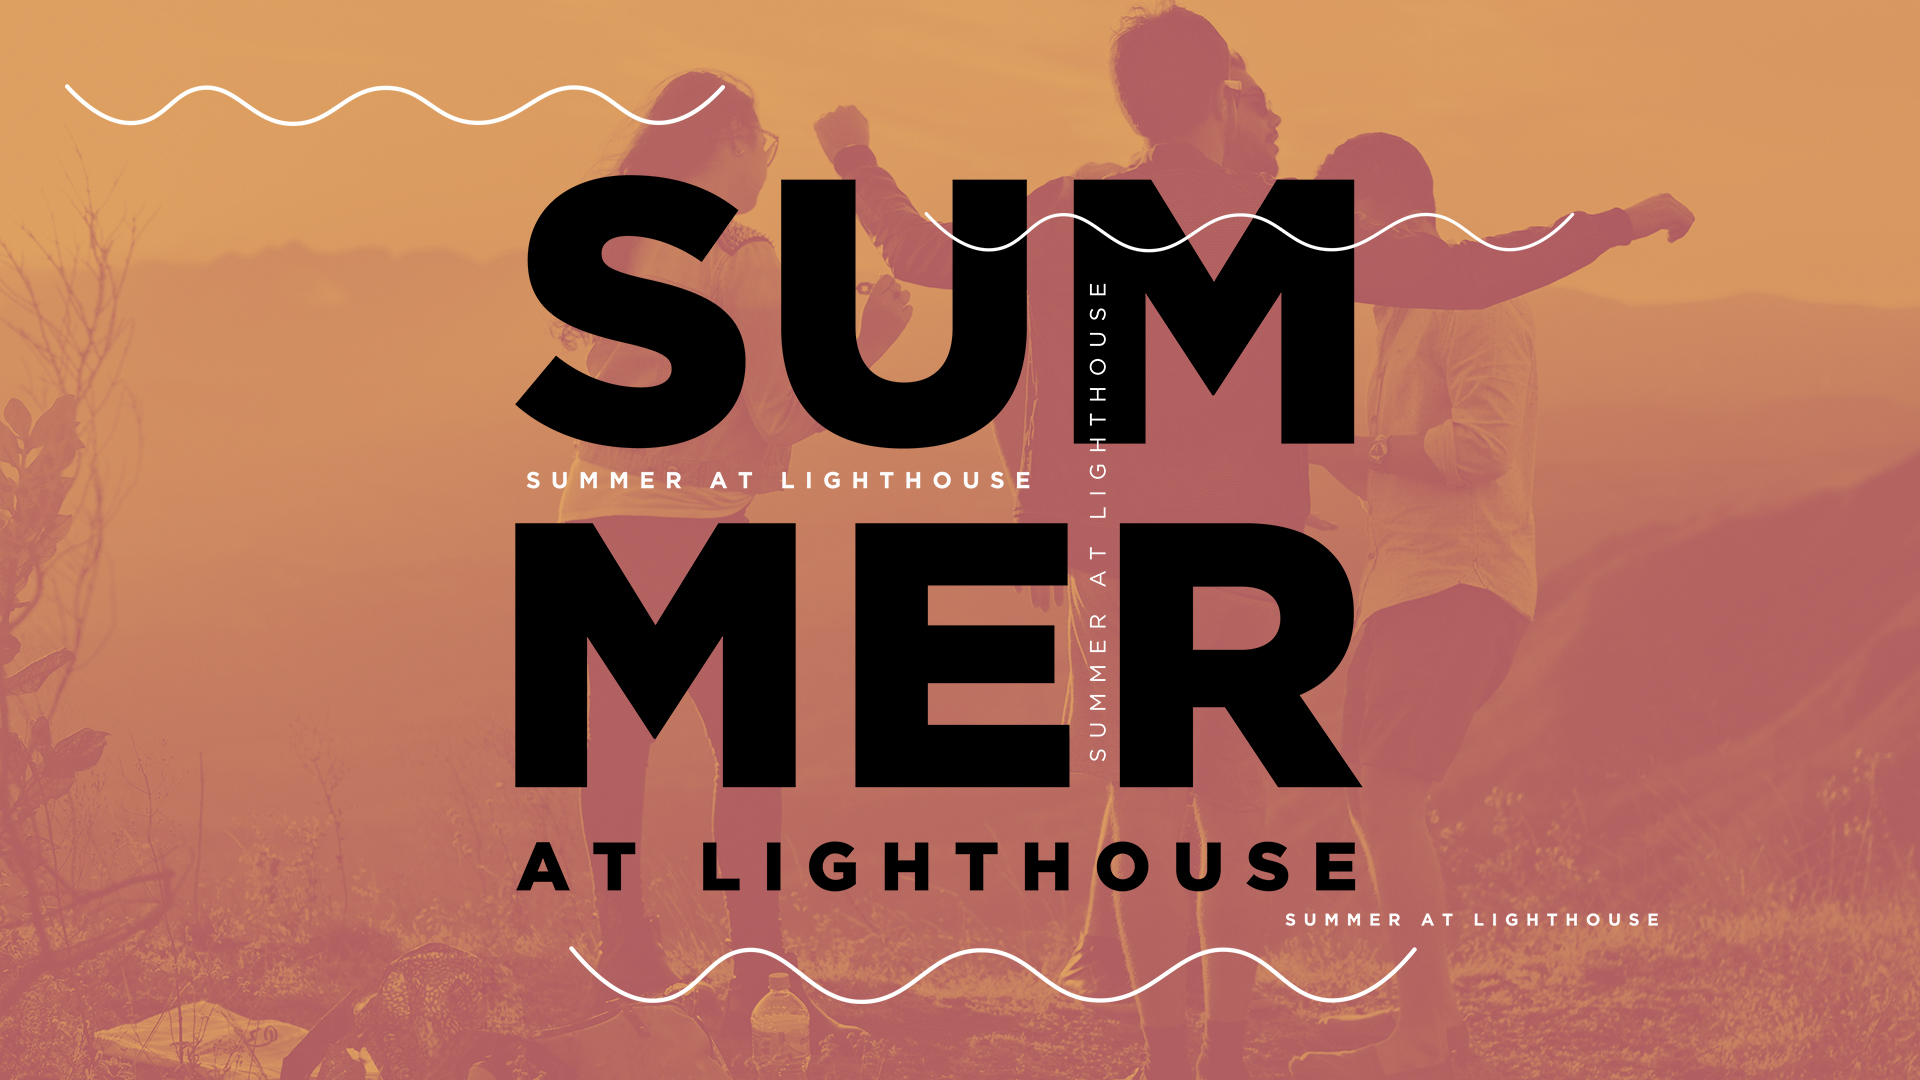 Summer at Lighthouse (July 2019)